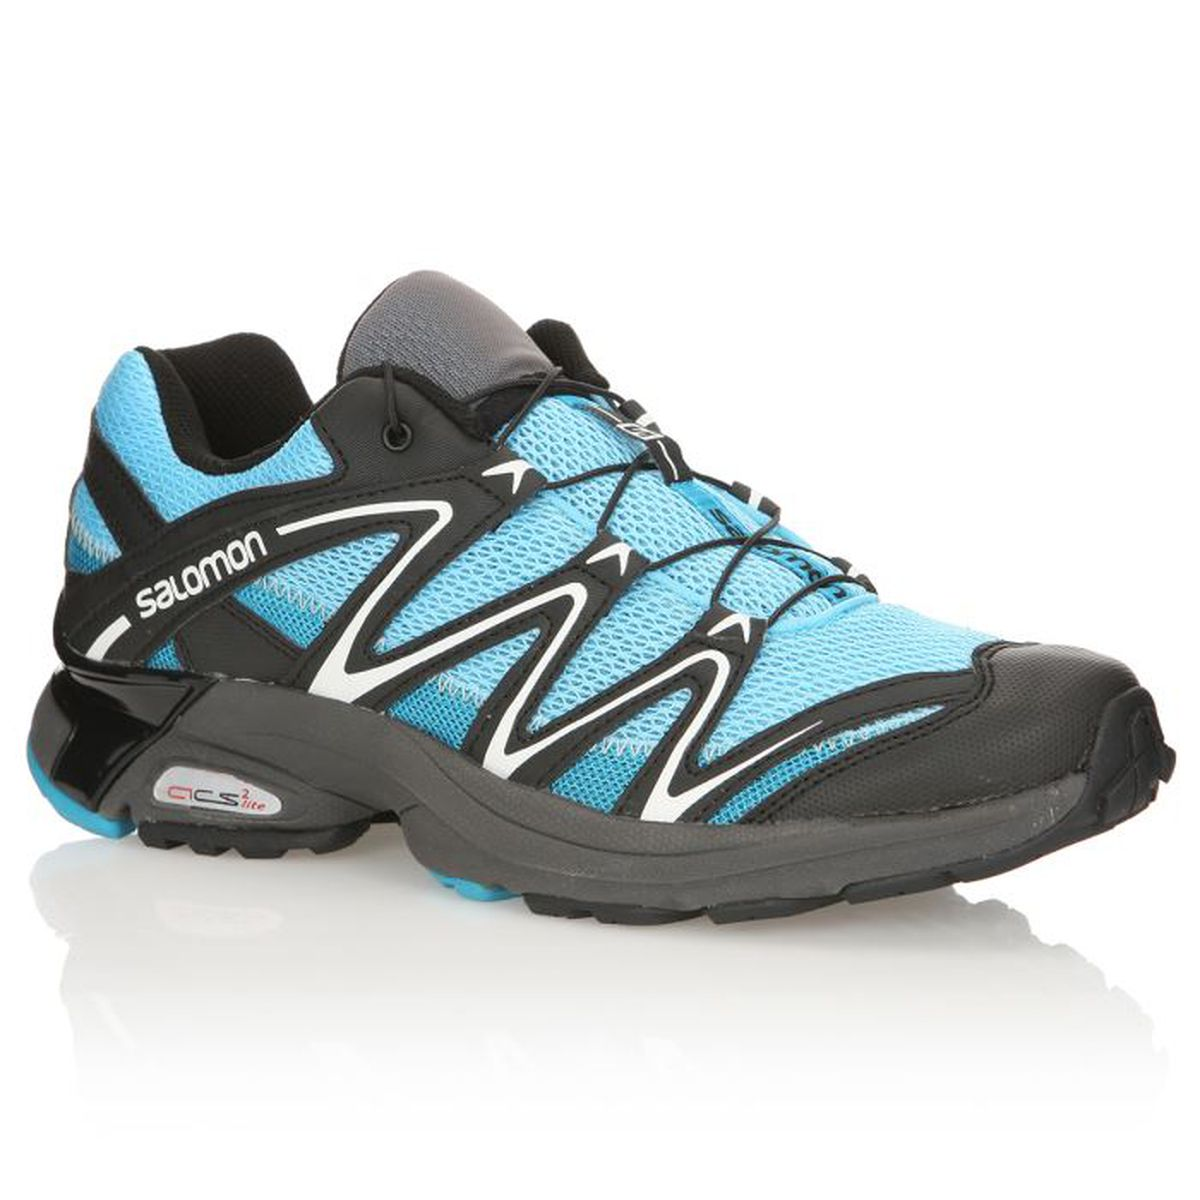 salomon chaussures trail running xt salta femme prix pas cher soldes cdiscount. Black Bedroom Furniture Sets. Home Design Ideas